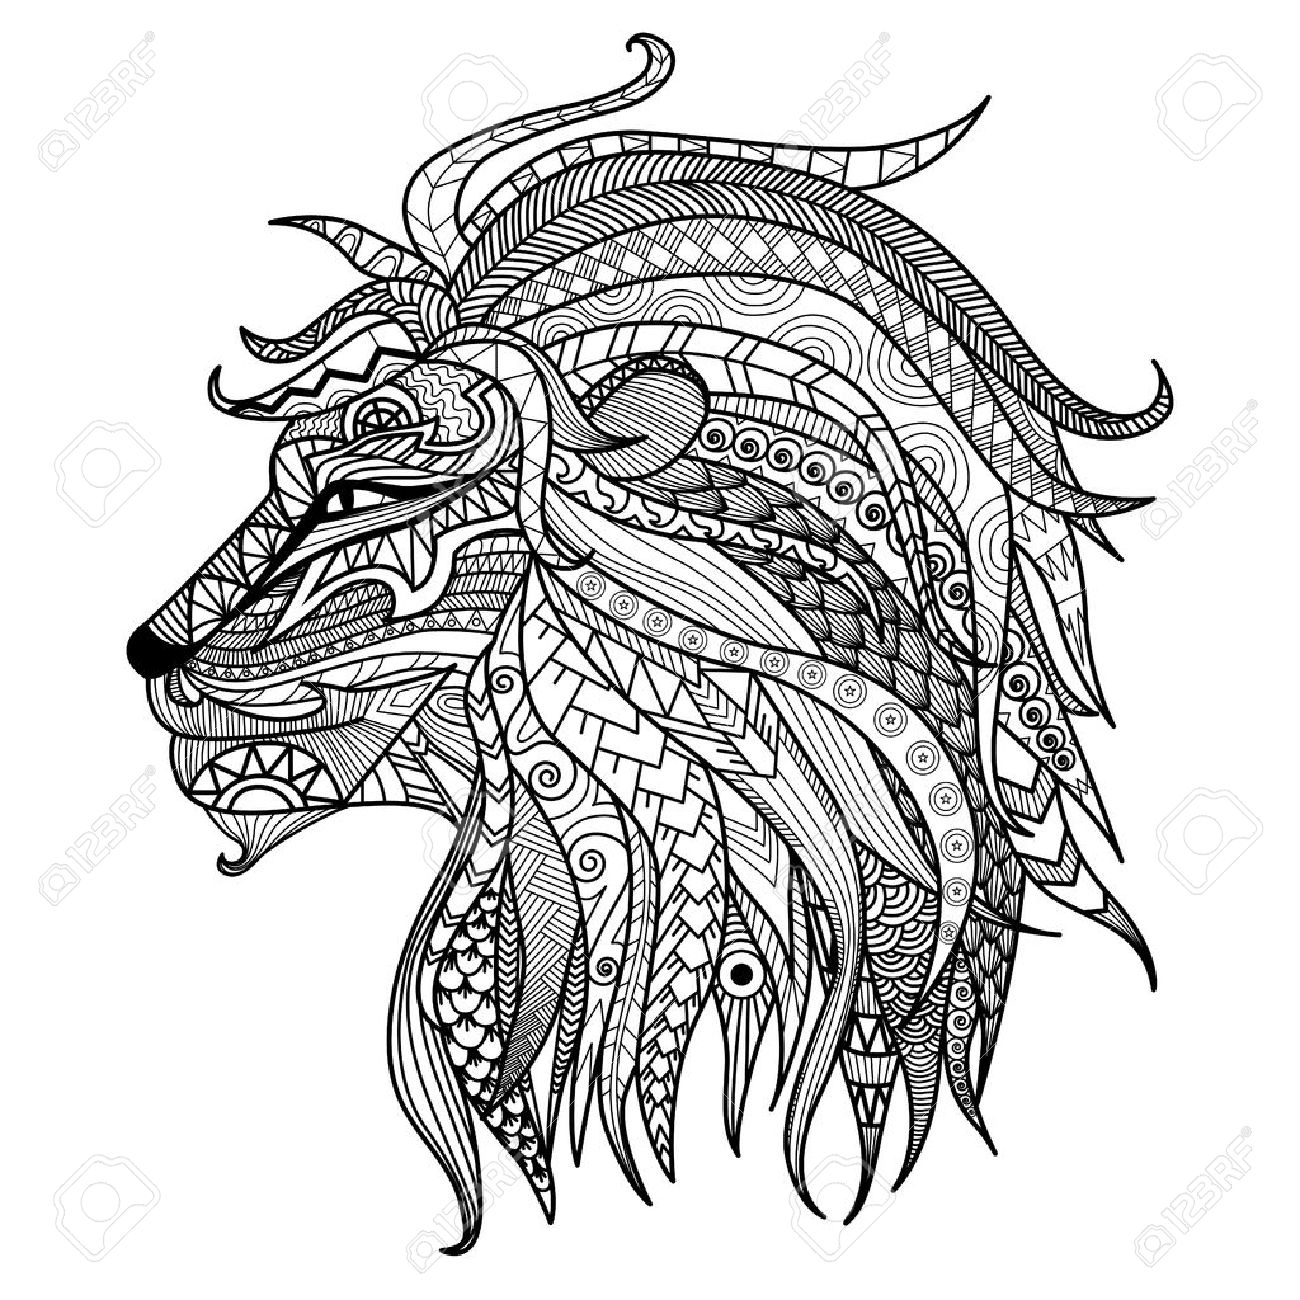 Hand Drawn Lion Coloring Page. Royalty Free Cliparts, Vectors, And ...